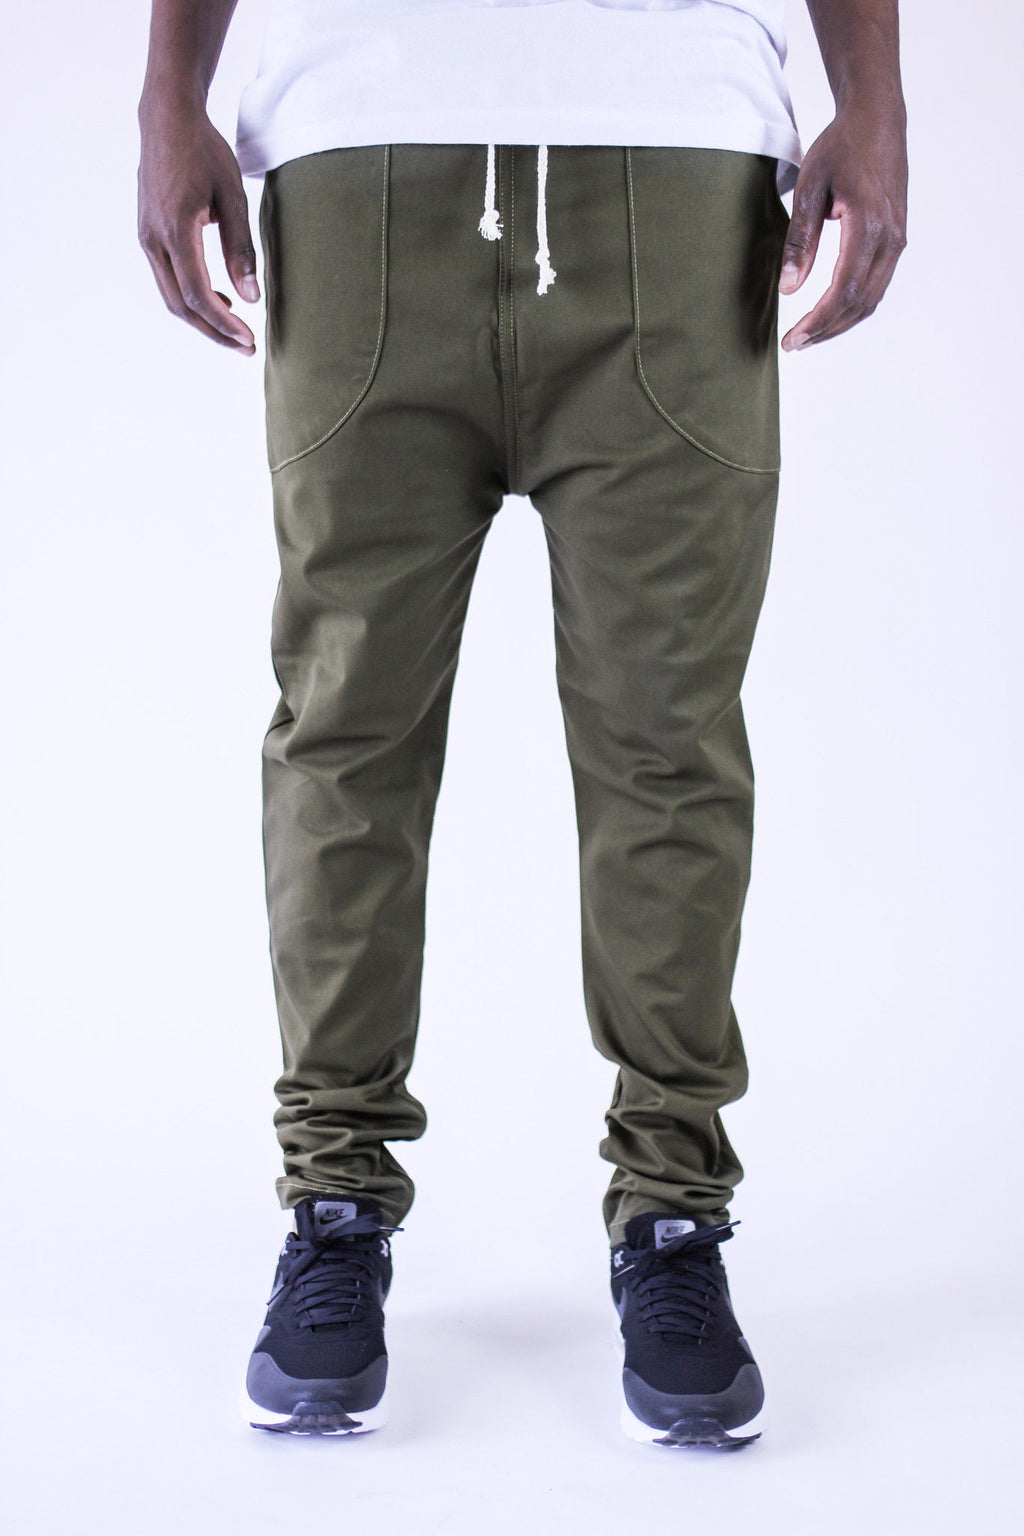 Kennedy Denim Dropcrop Pants Olive Pants Ascent Wear - 1